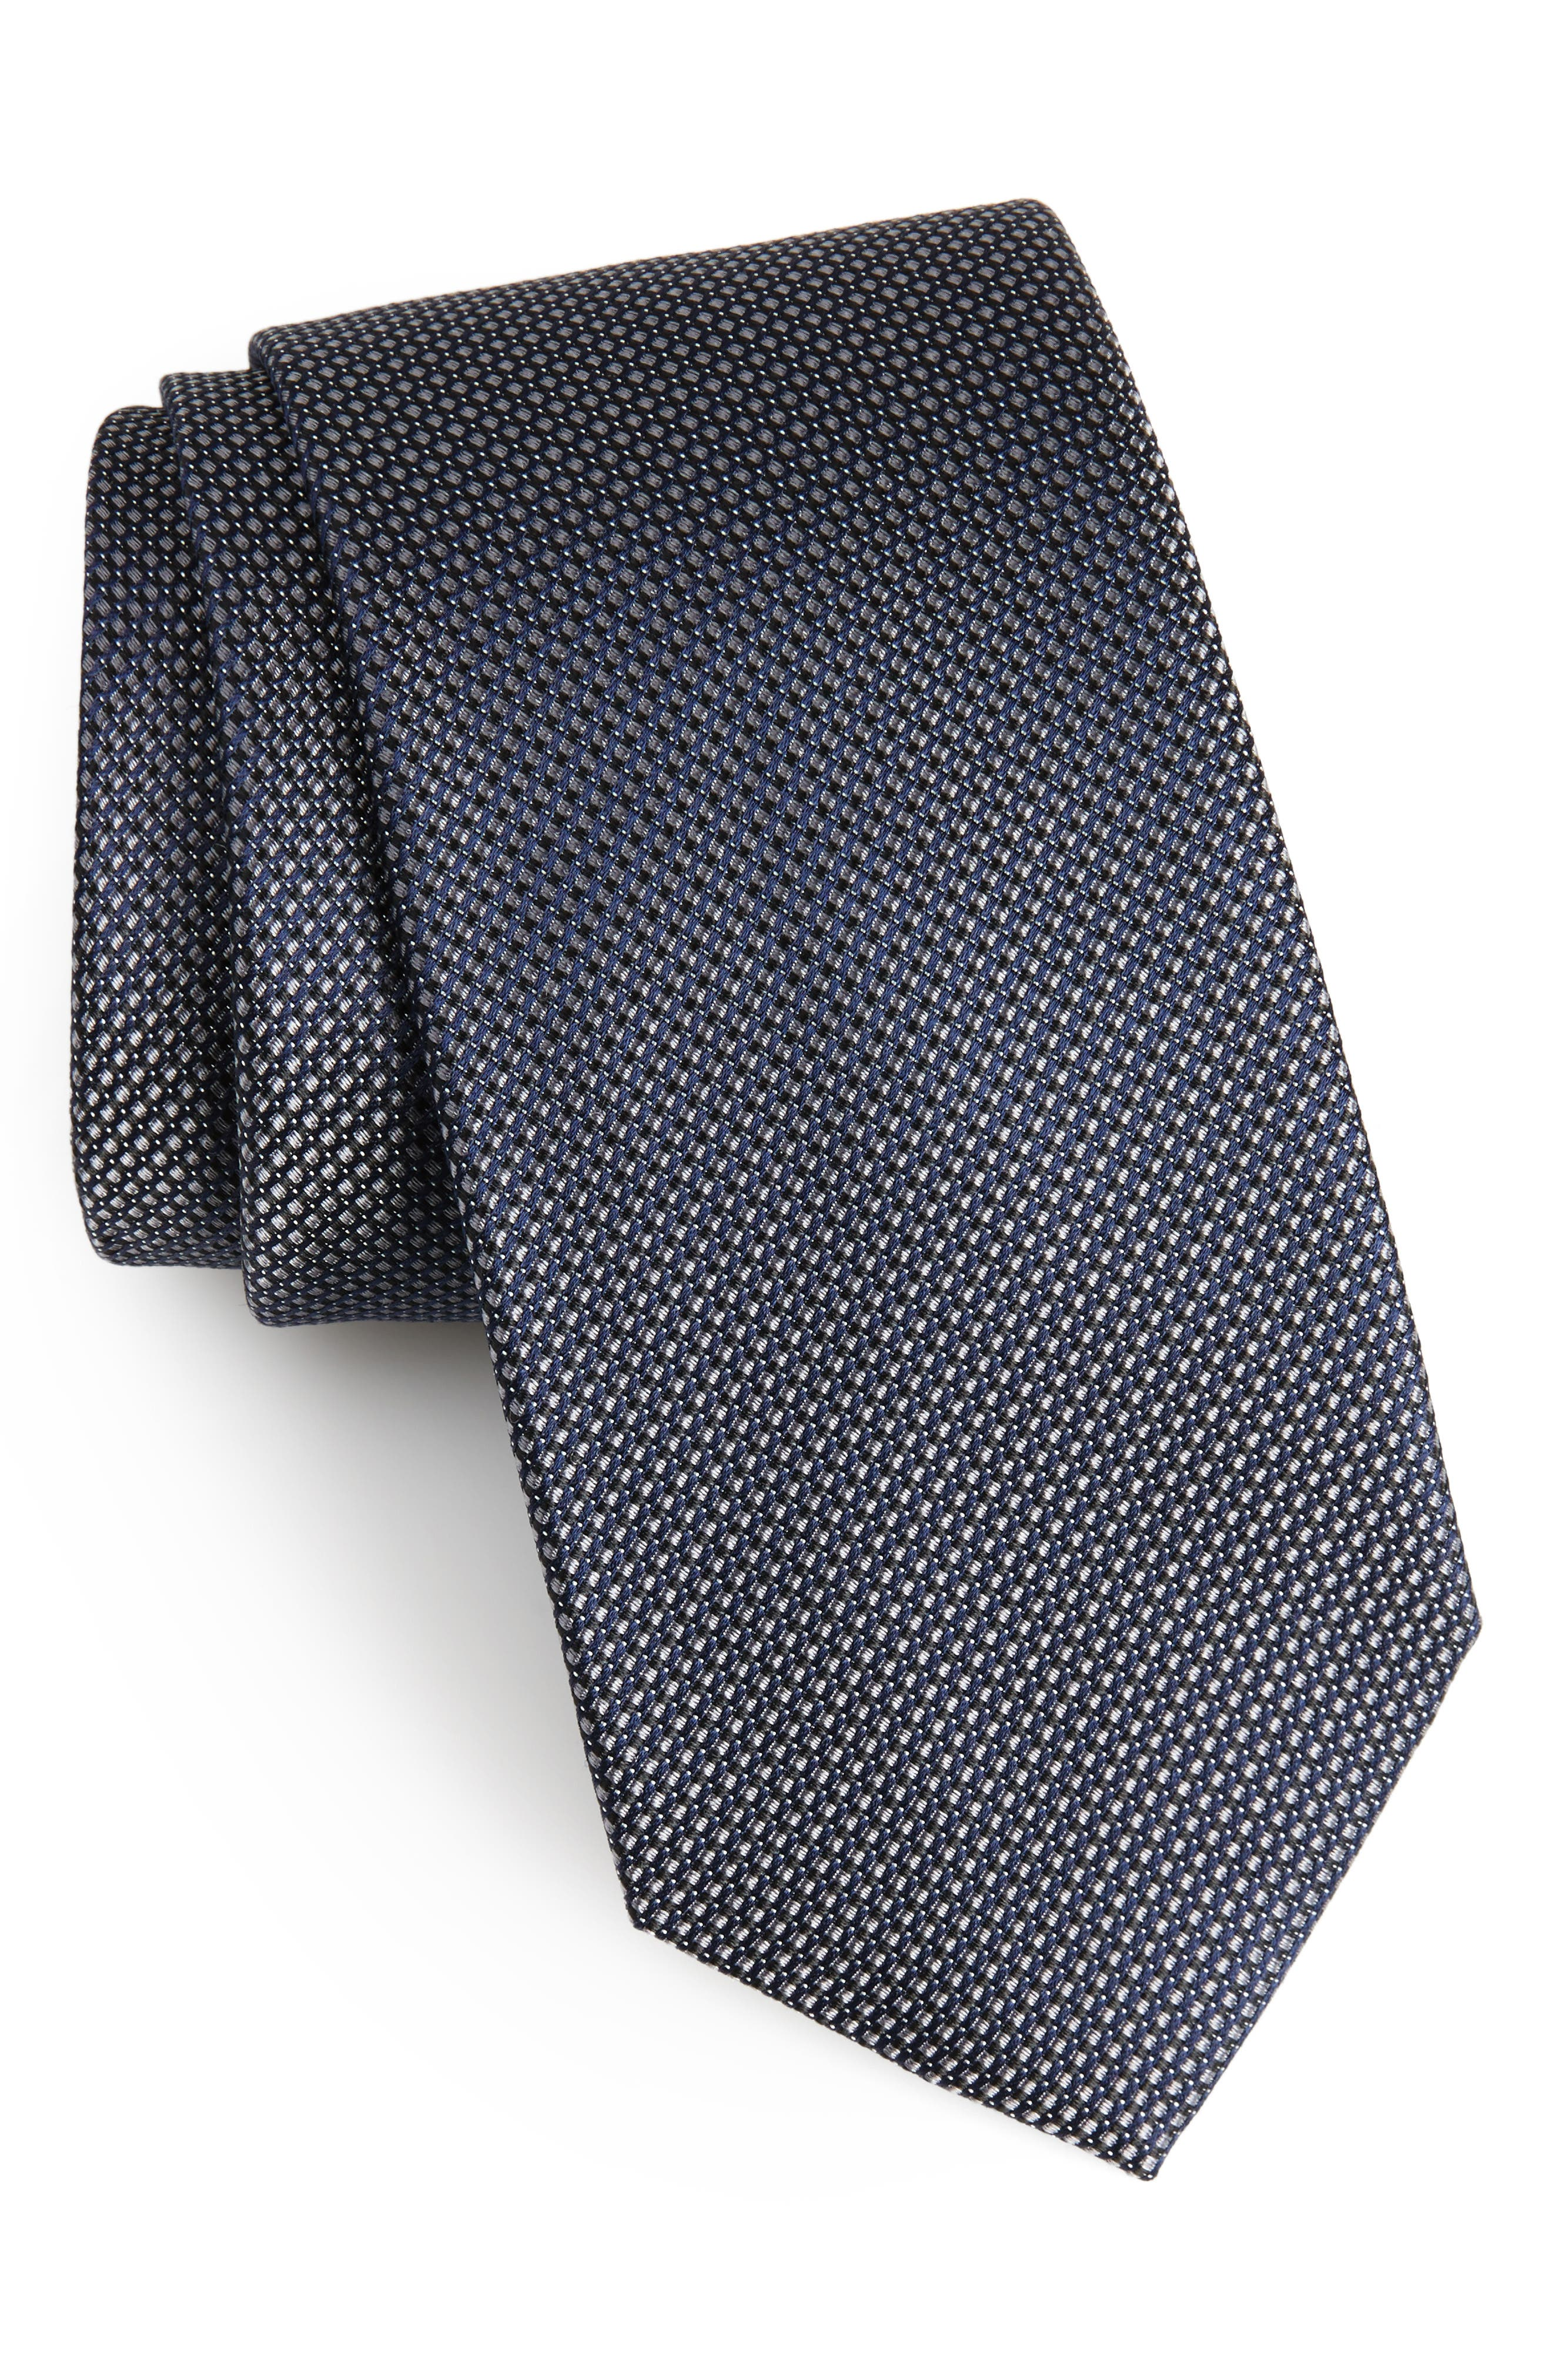 Amsberry Microcheck Silk Tie,                             Main thumbnail 1, color,                             Black